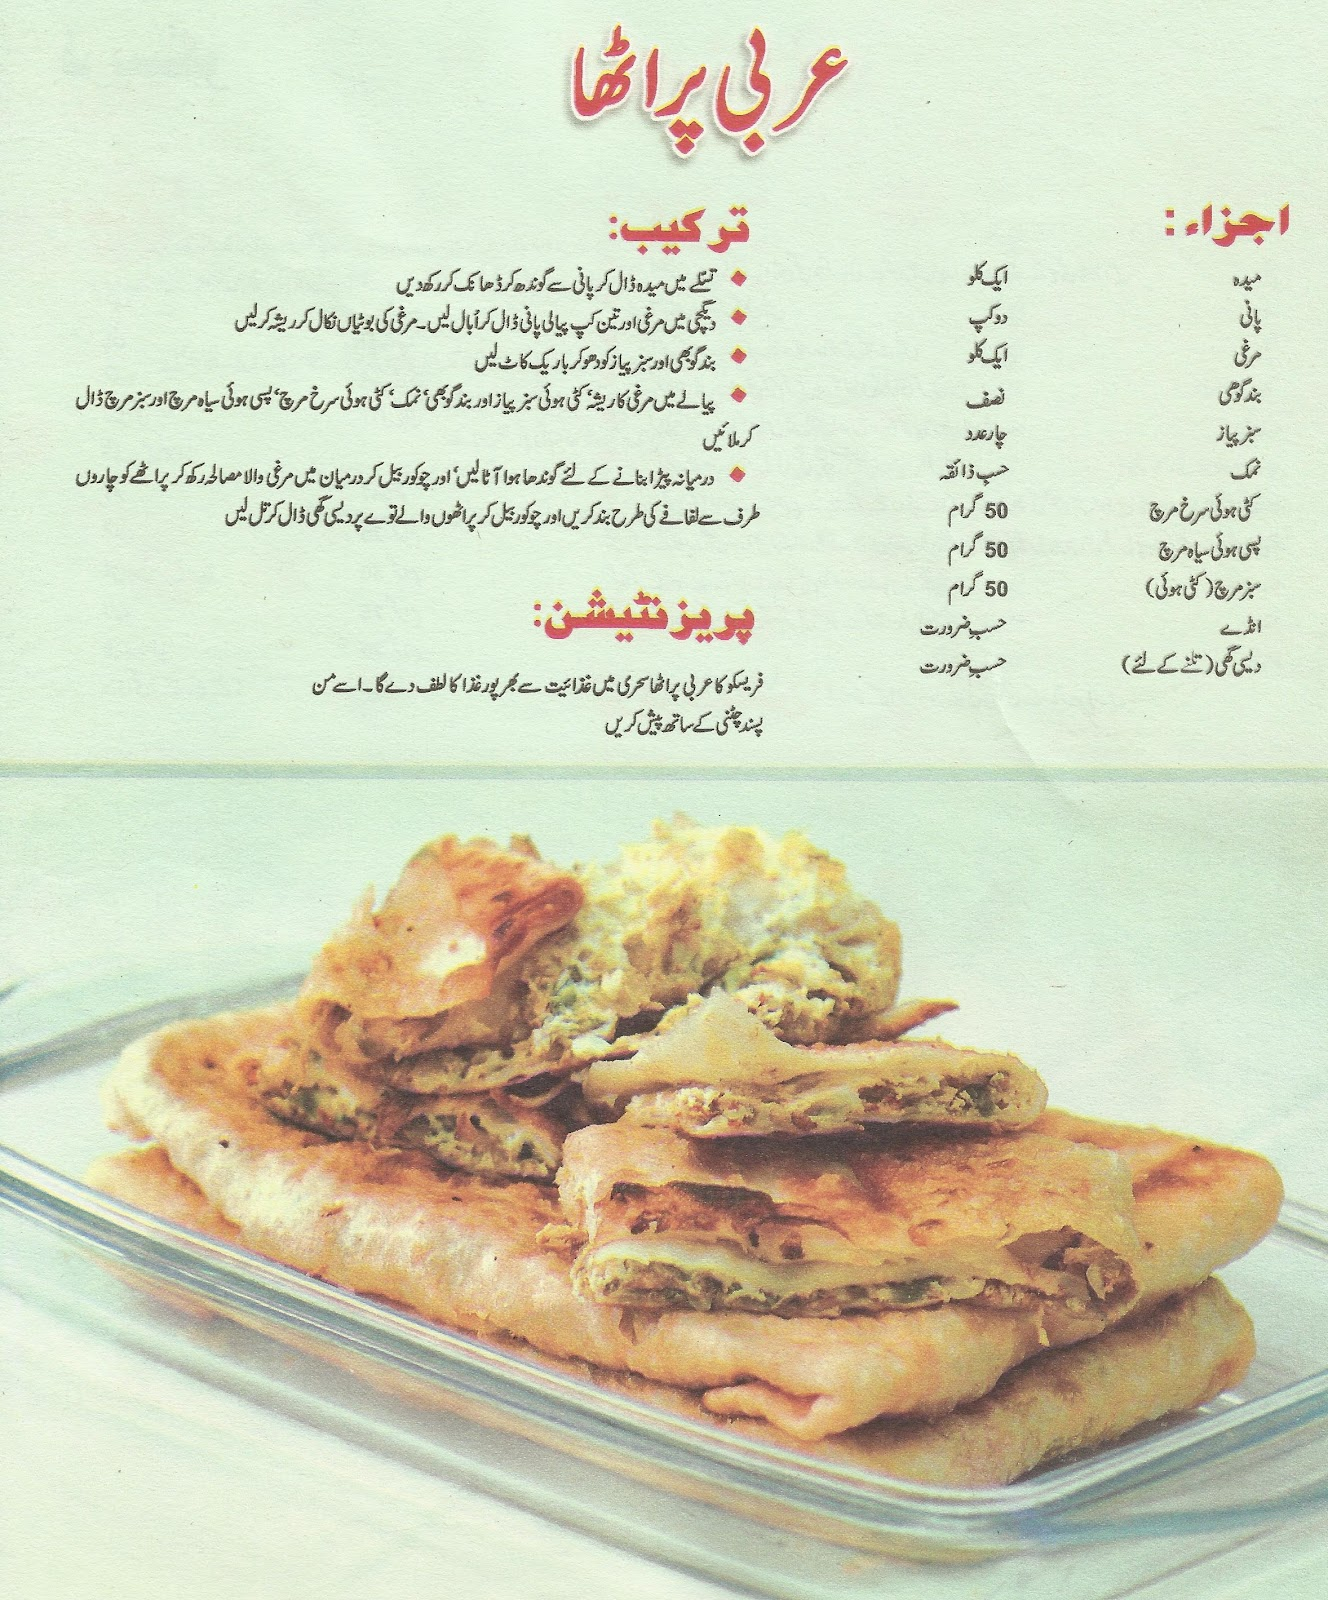 Coking philospher 2012 arabi pratha a arabic cooking recipe in urdu forumfinder Choice Image